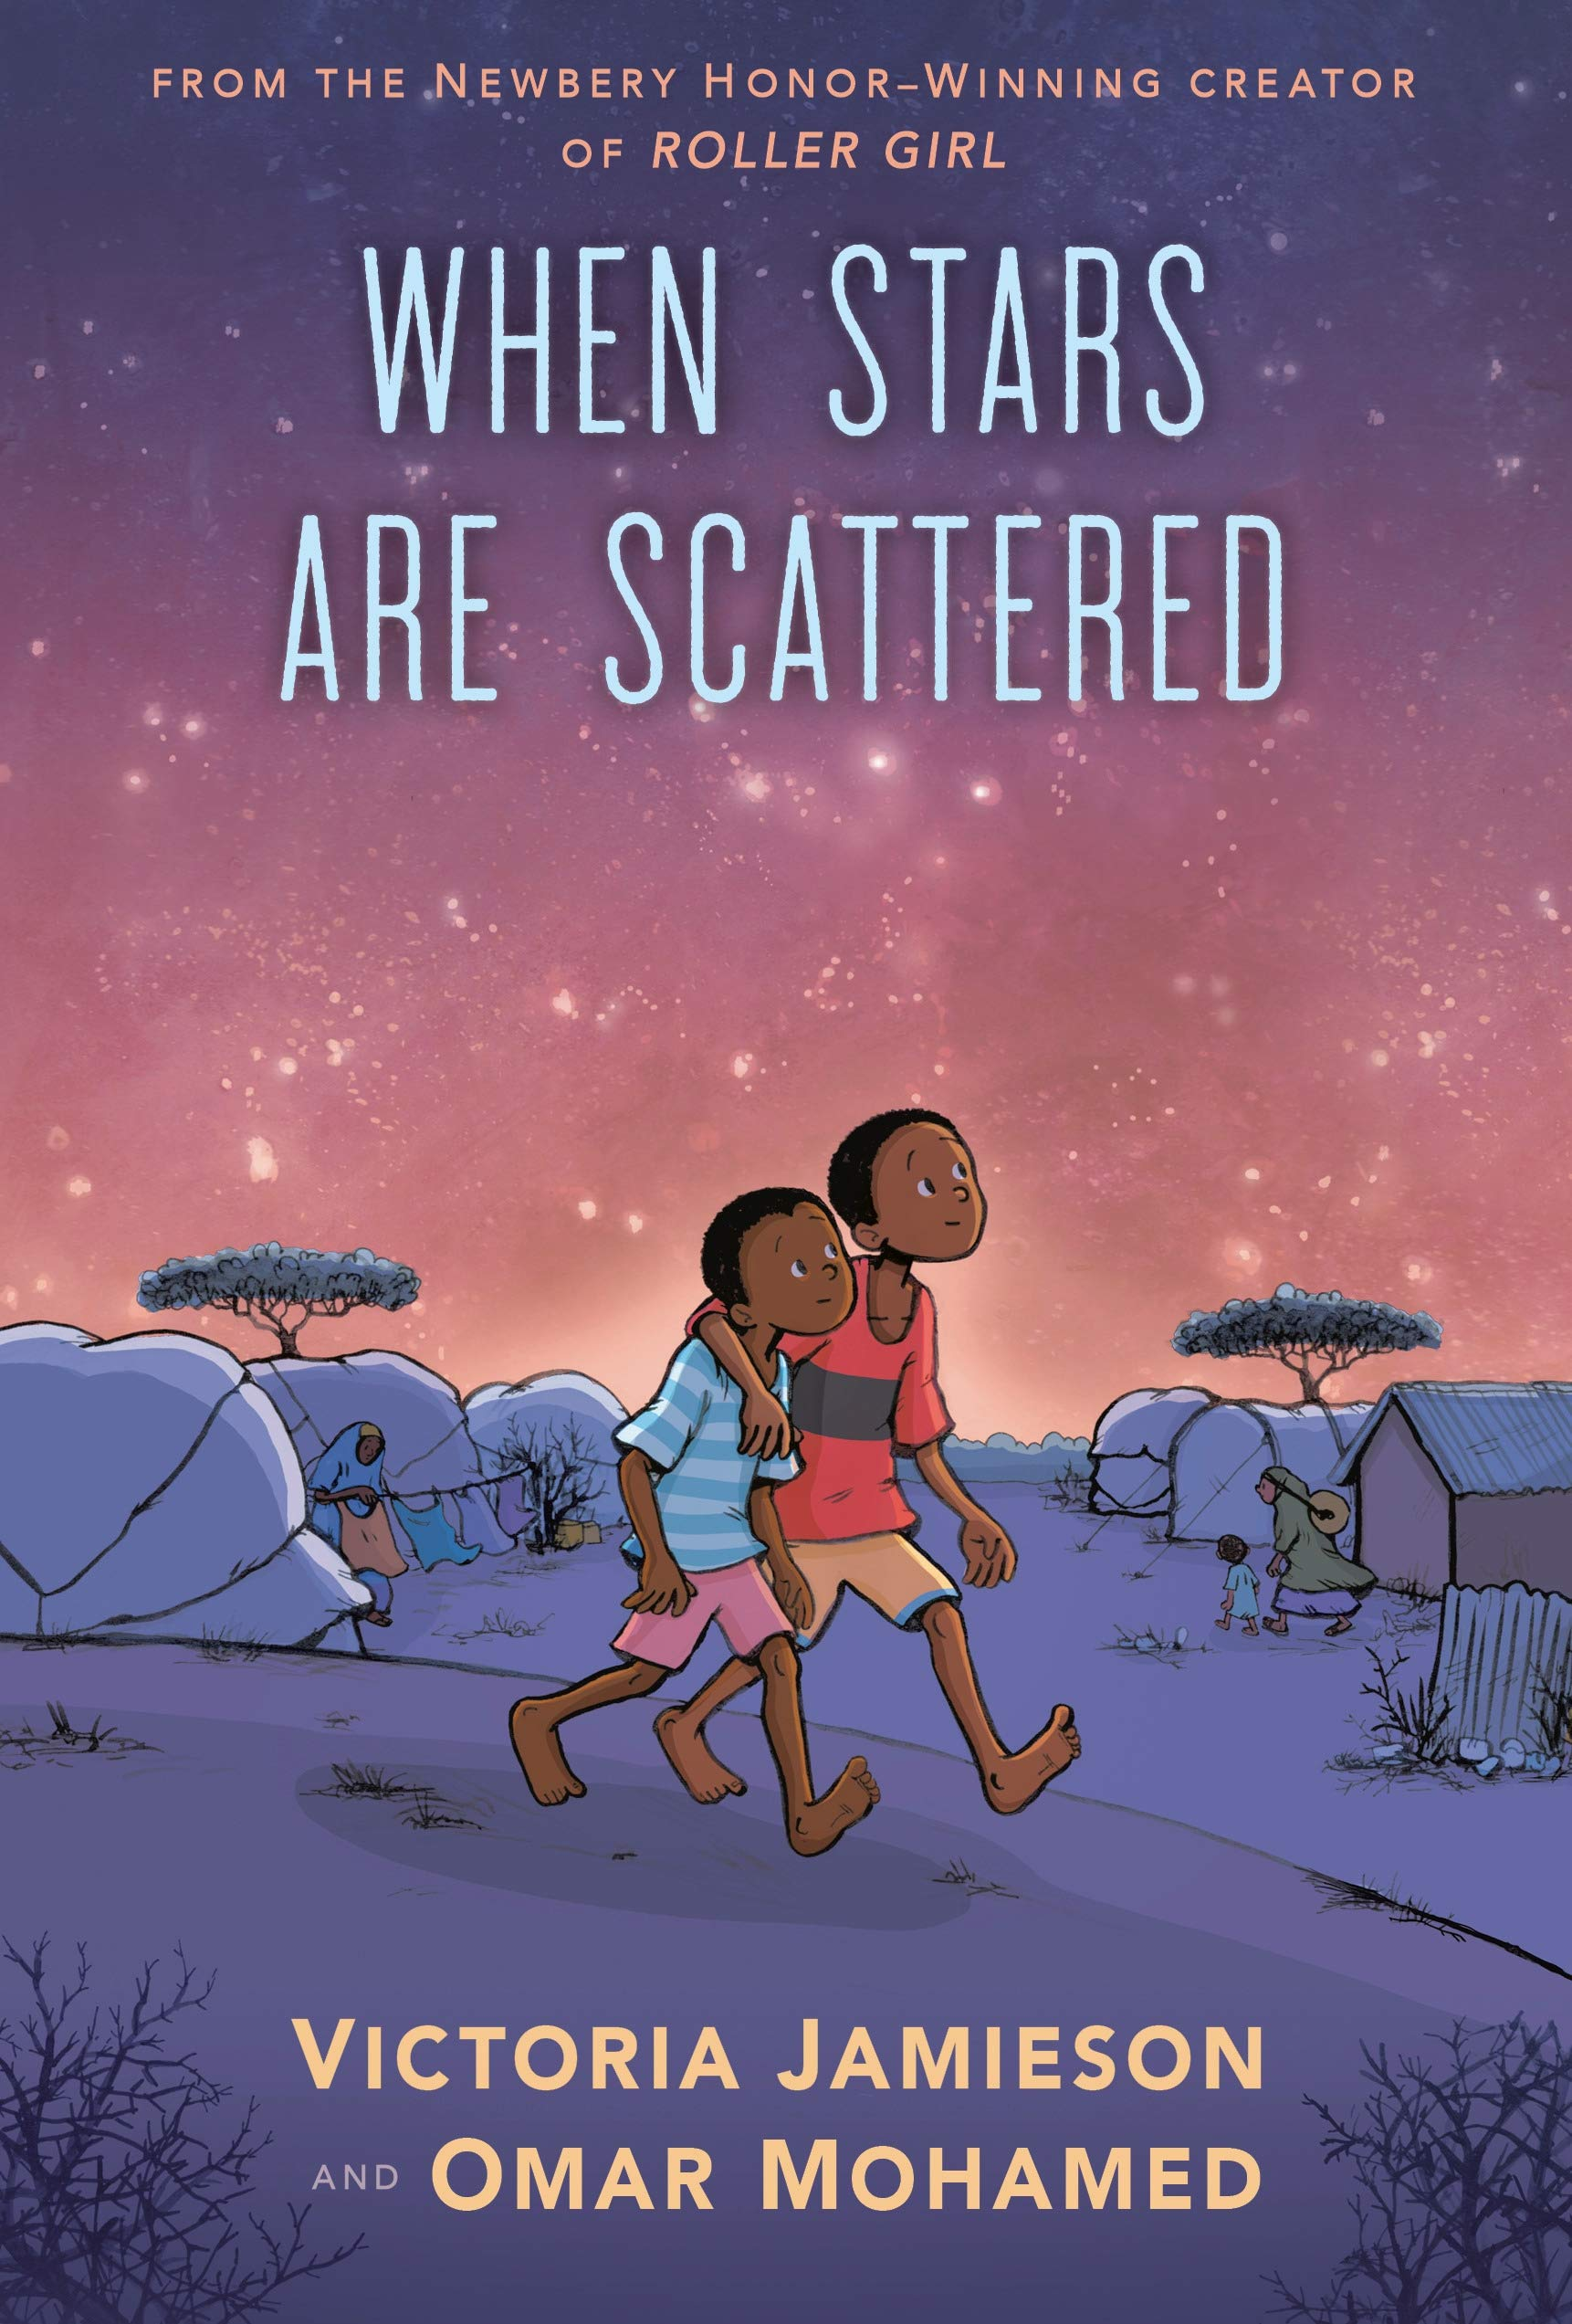 When Stars Are Scattered: Amazon.co.uk: Victoria Jamieson: Books